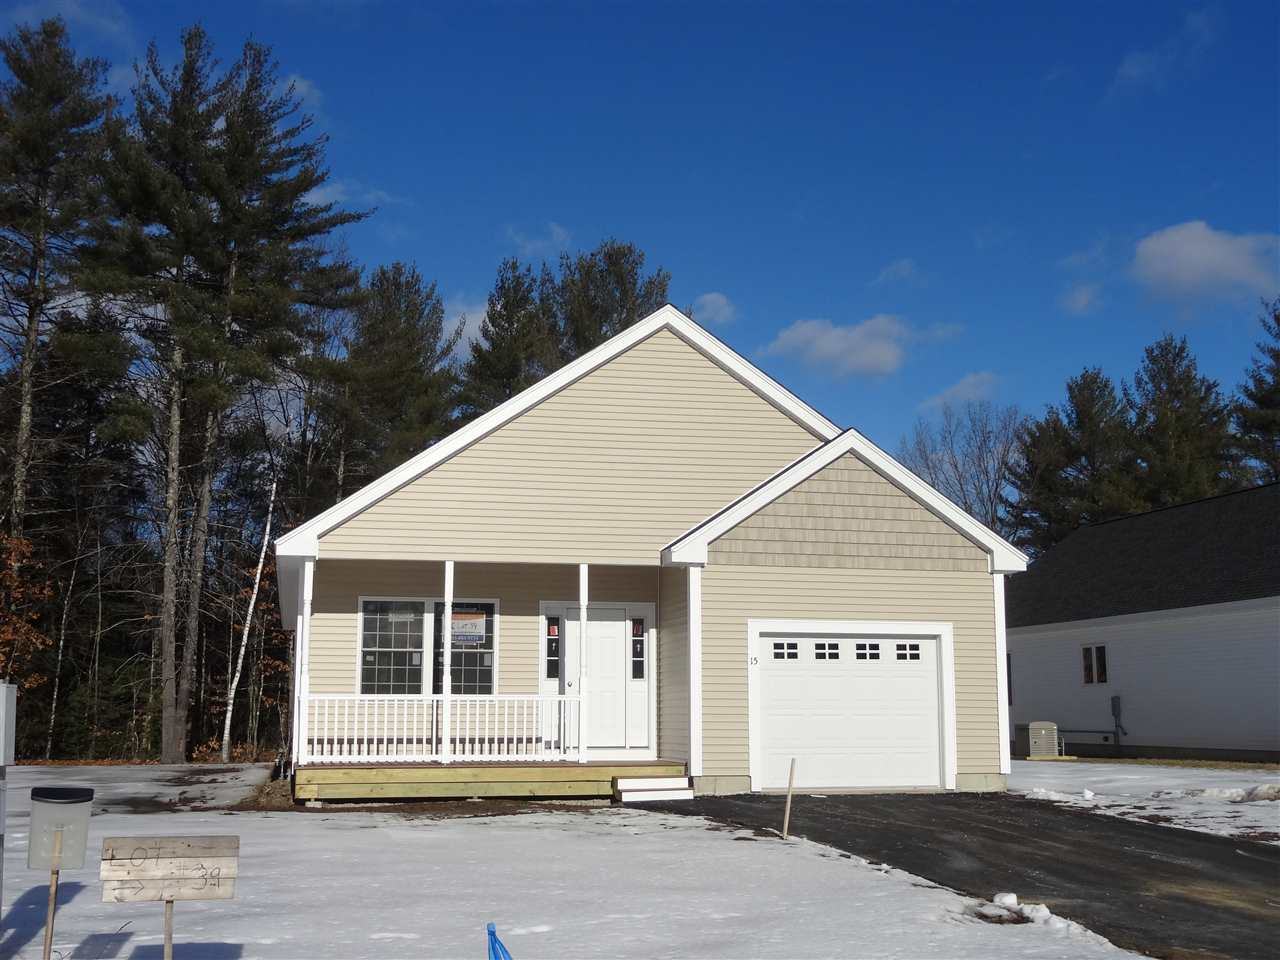 Photo of 15 Nickerson Drive Concord NH 03303